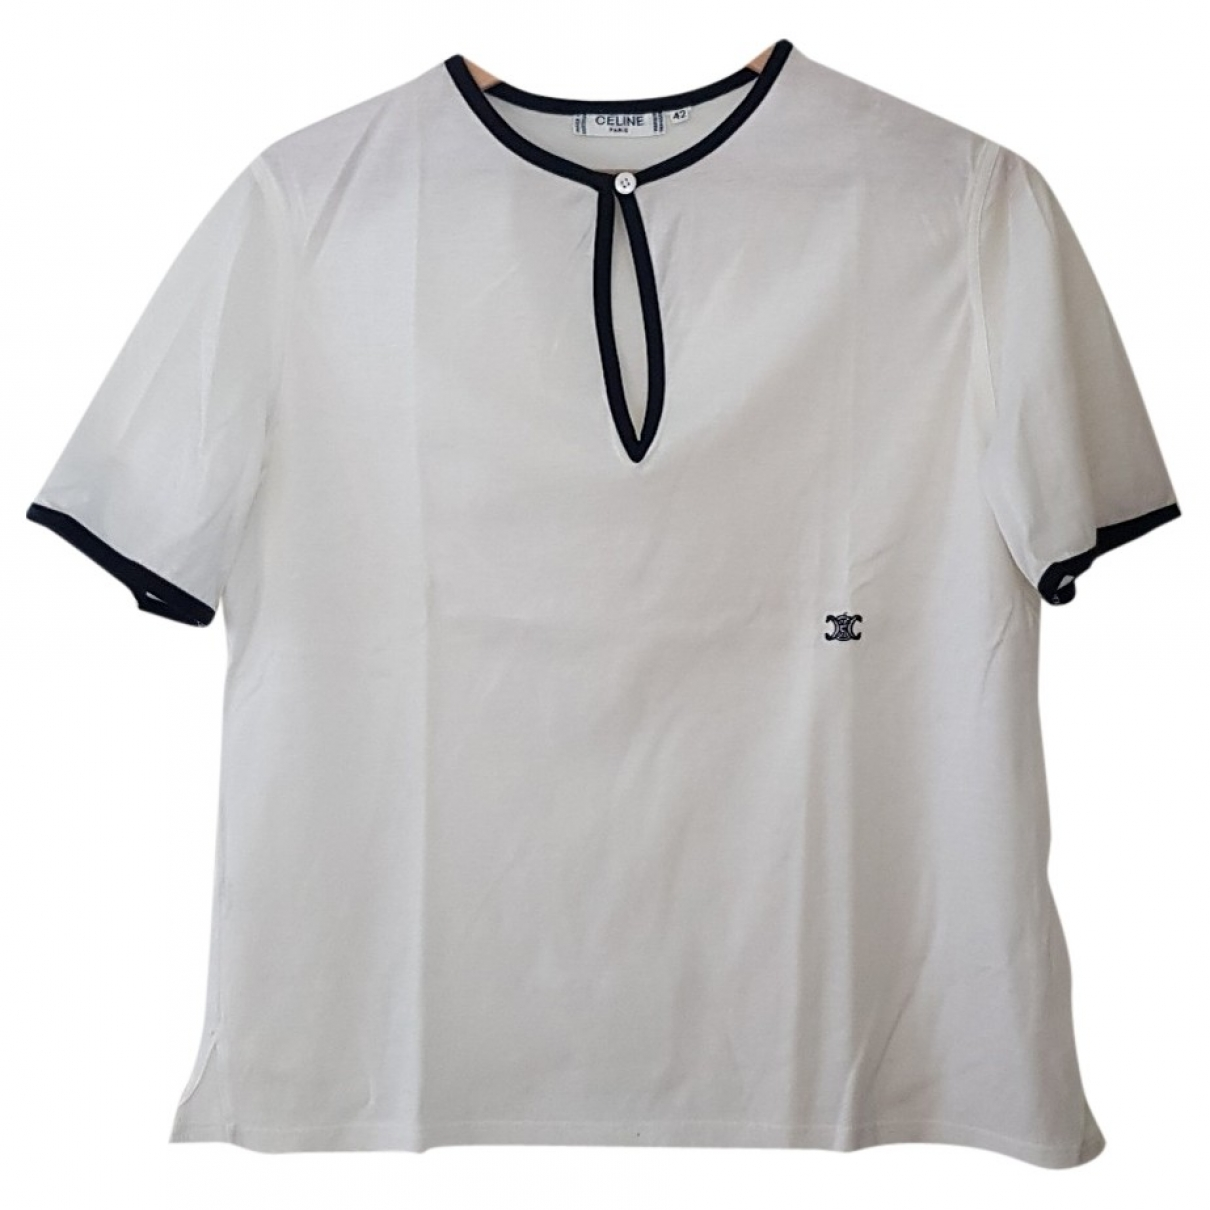 Celine \N White Cotton  top for Women 42 FR